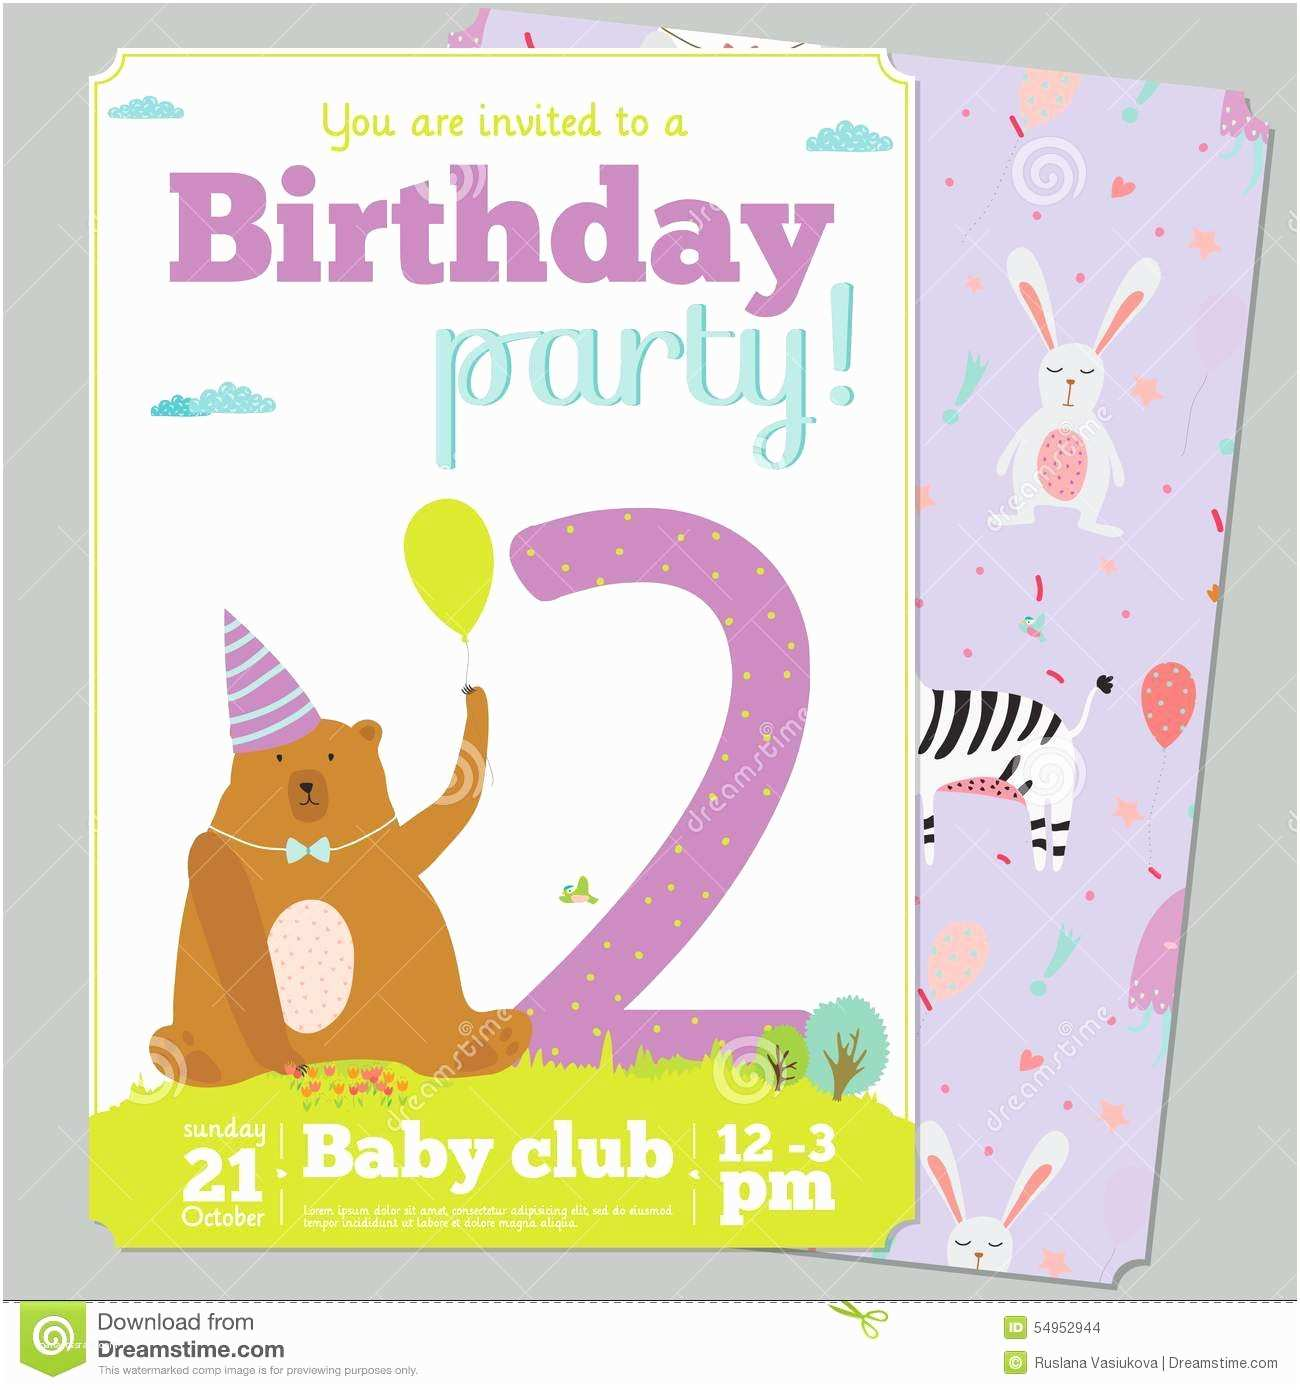 Cute Birthday Invitations Birthday Party Invitation Card Template with Cute Stock